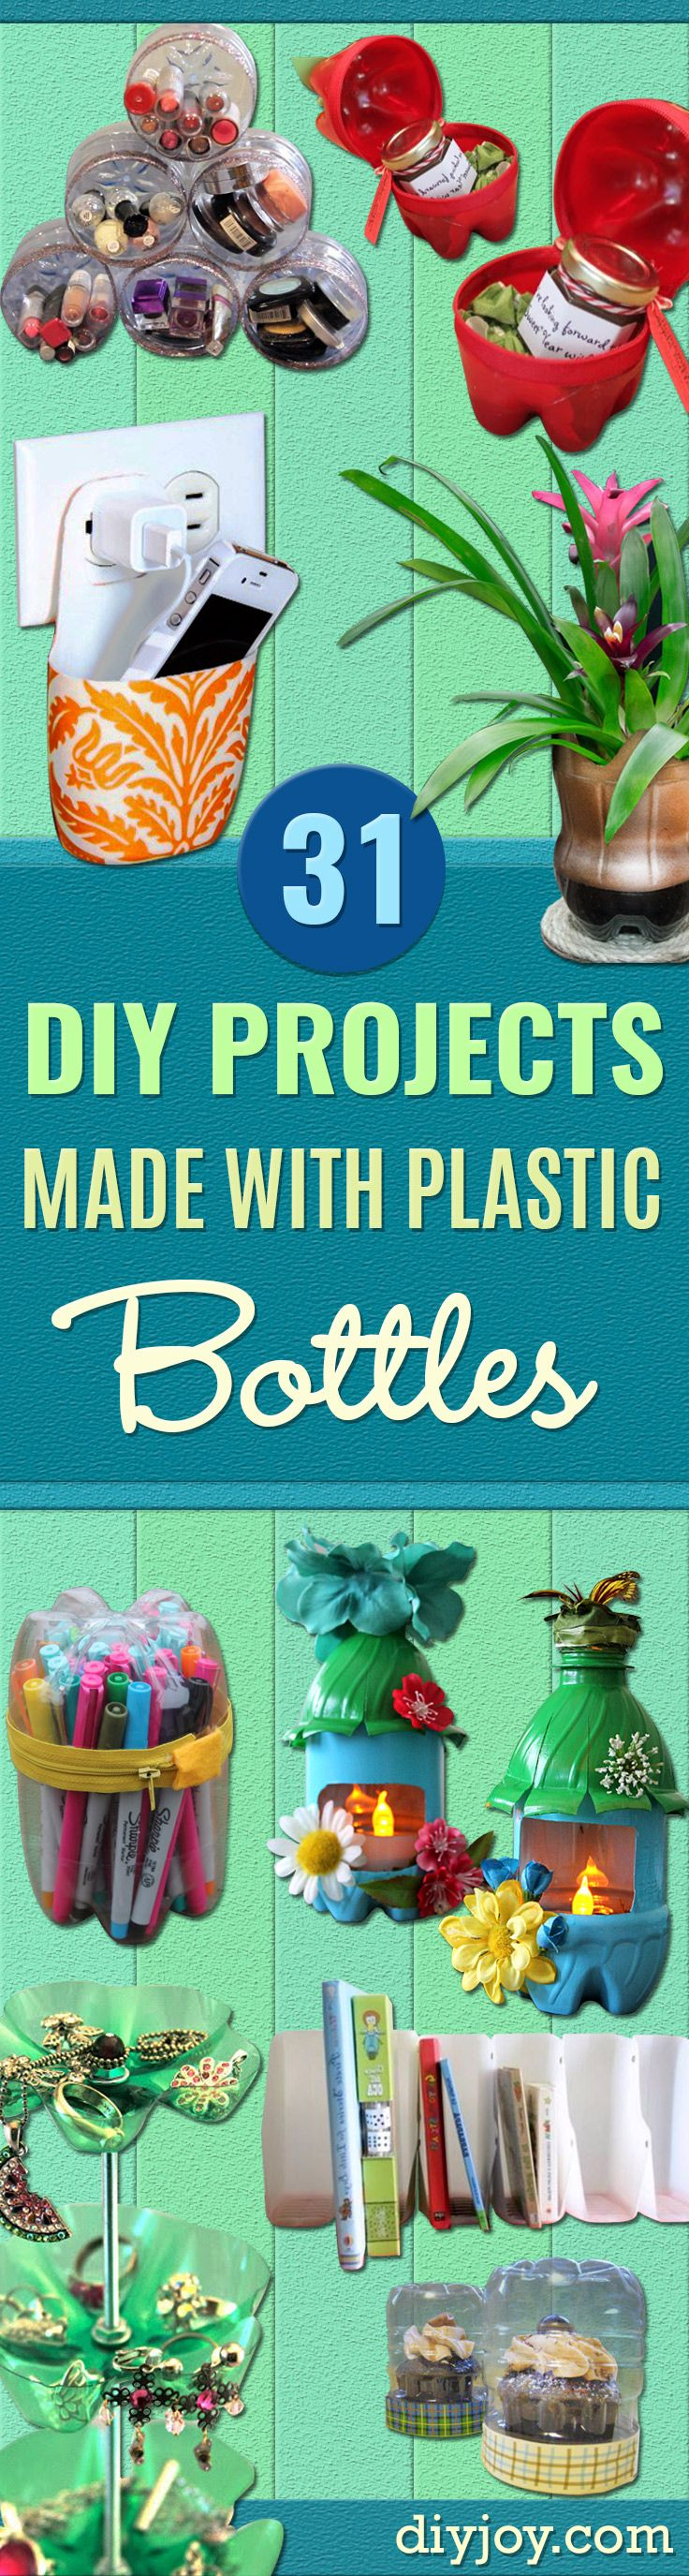 181 best images about soda bottle on pinterest recycling for Cool recycling projects